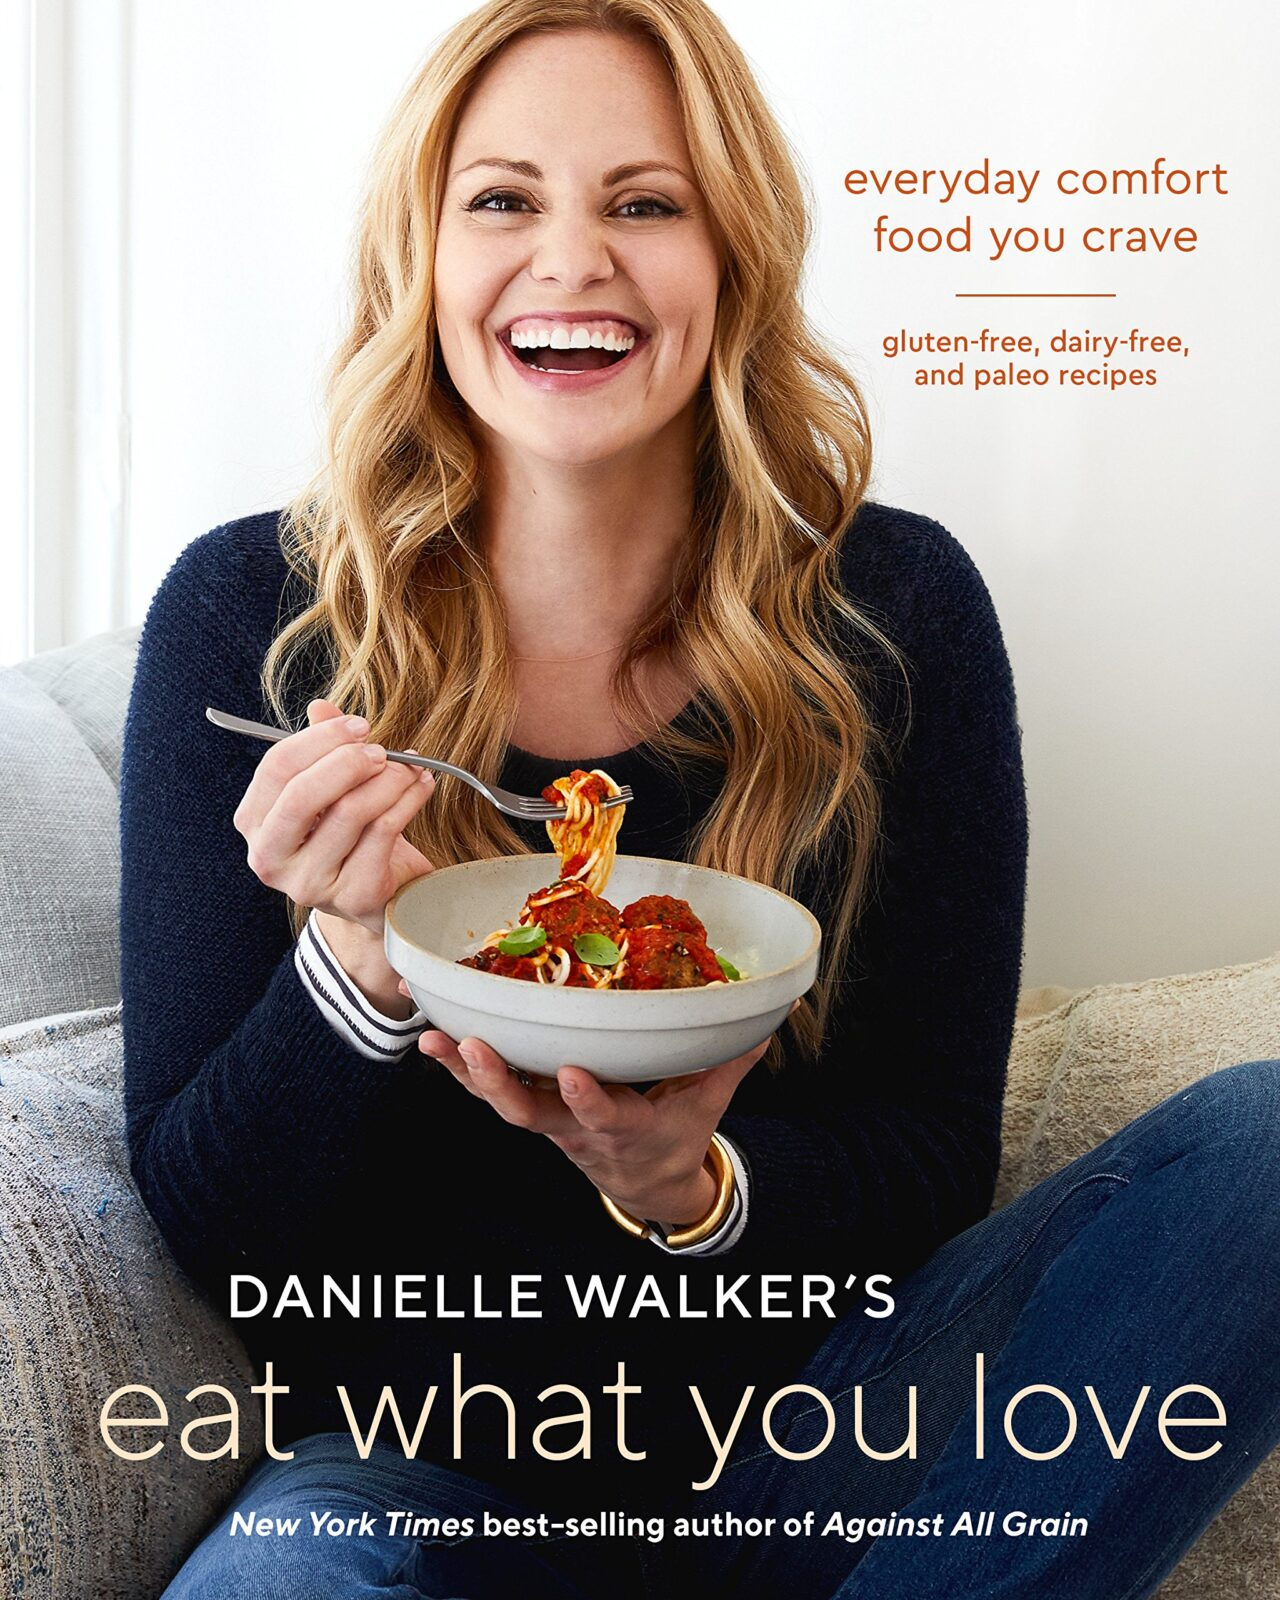 Eat What You Love Danielle Walker edit seven healthy cookbooks 2019 january